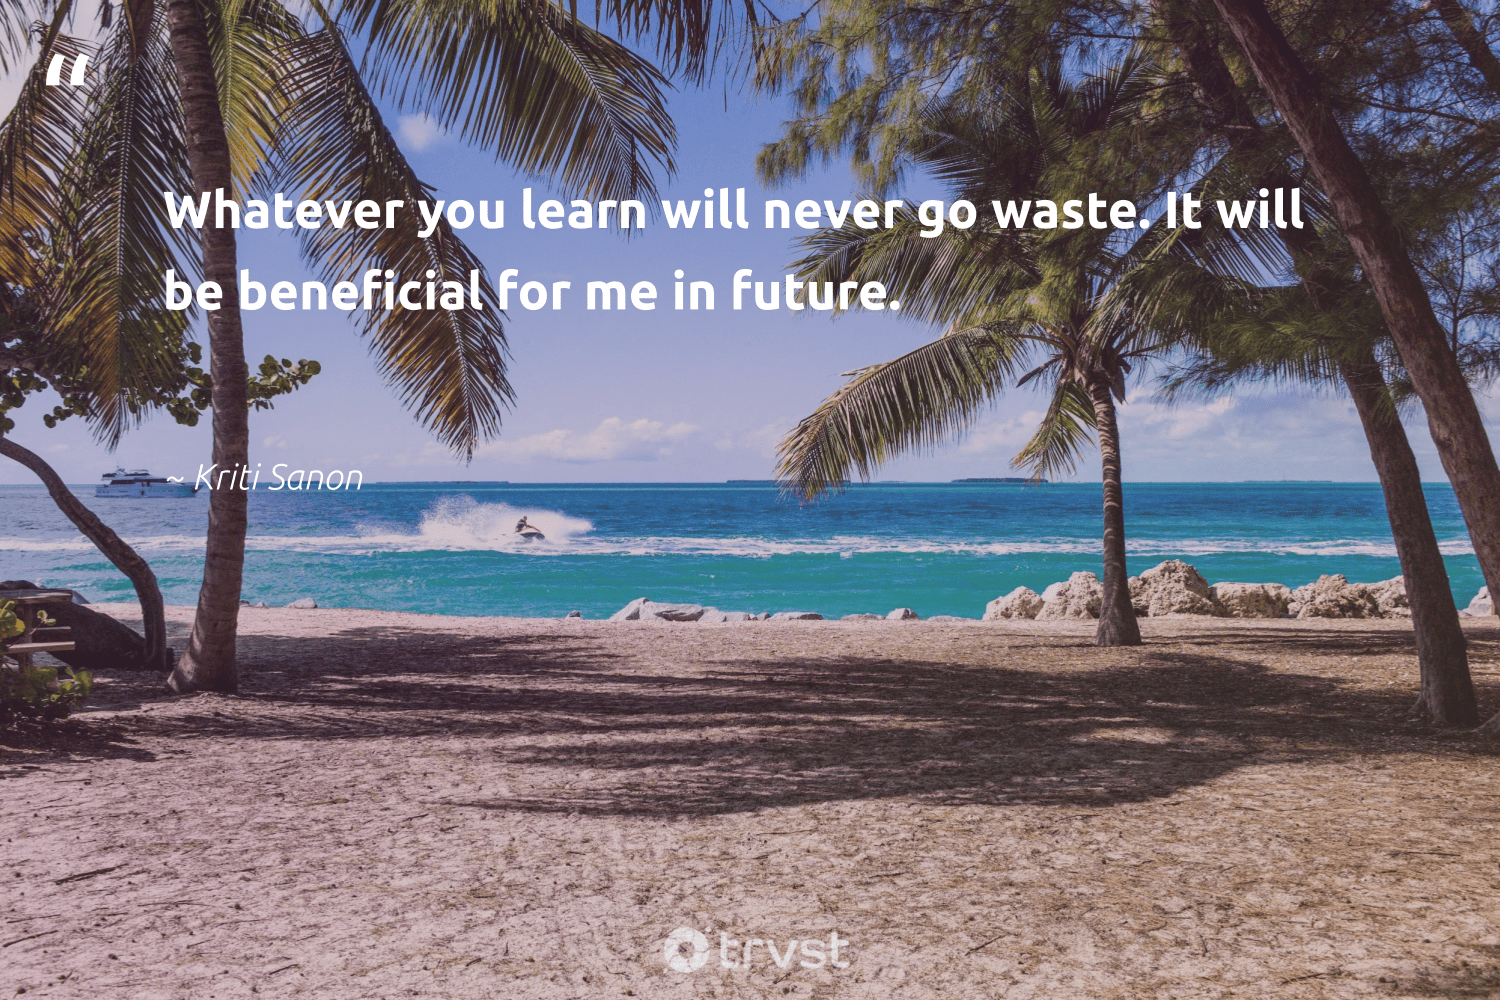 """Whatever you learn will never go waste. It will be beneficial for me in future.""  - Kriti Sanon #trvst #quotes #waste #softskills #thinkgreen #begreat #socialimpact #futureofwork #planetearthfirst #nevergiveup #impact #dogood"